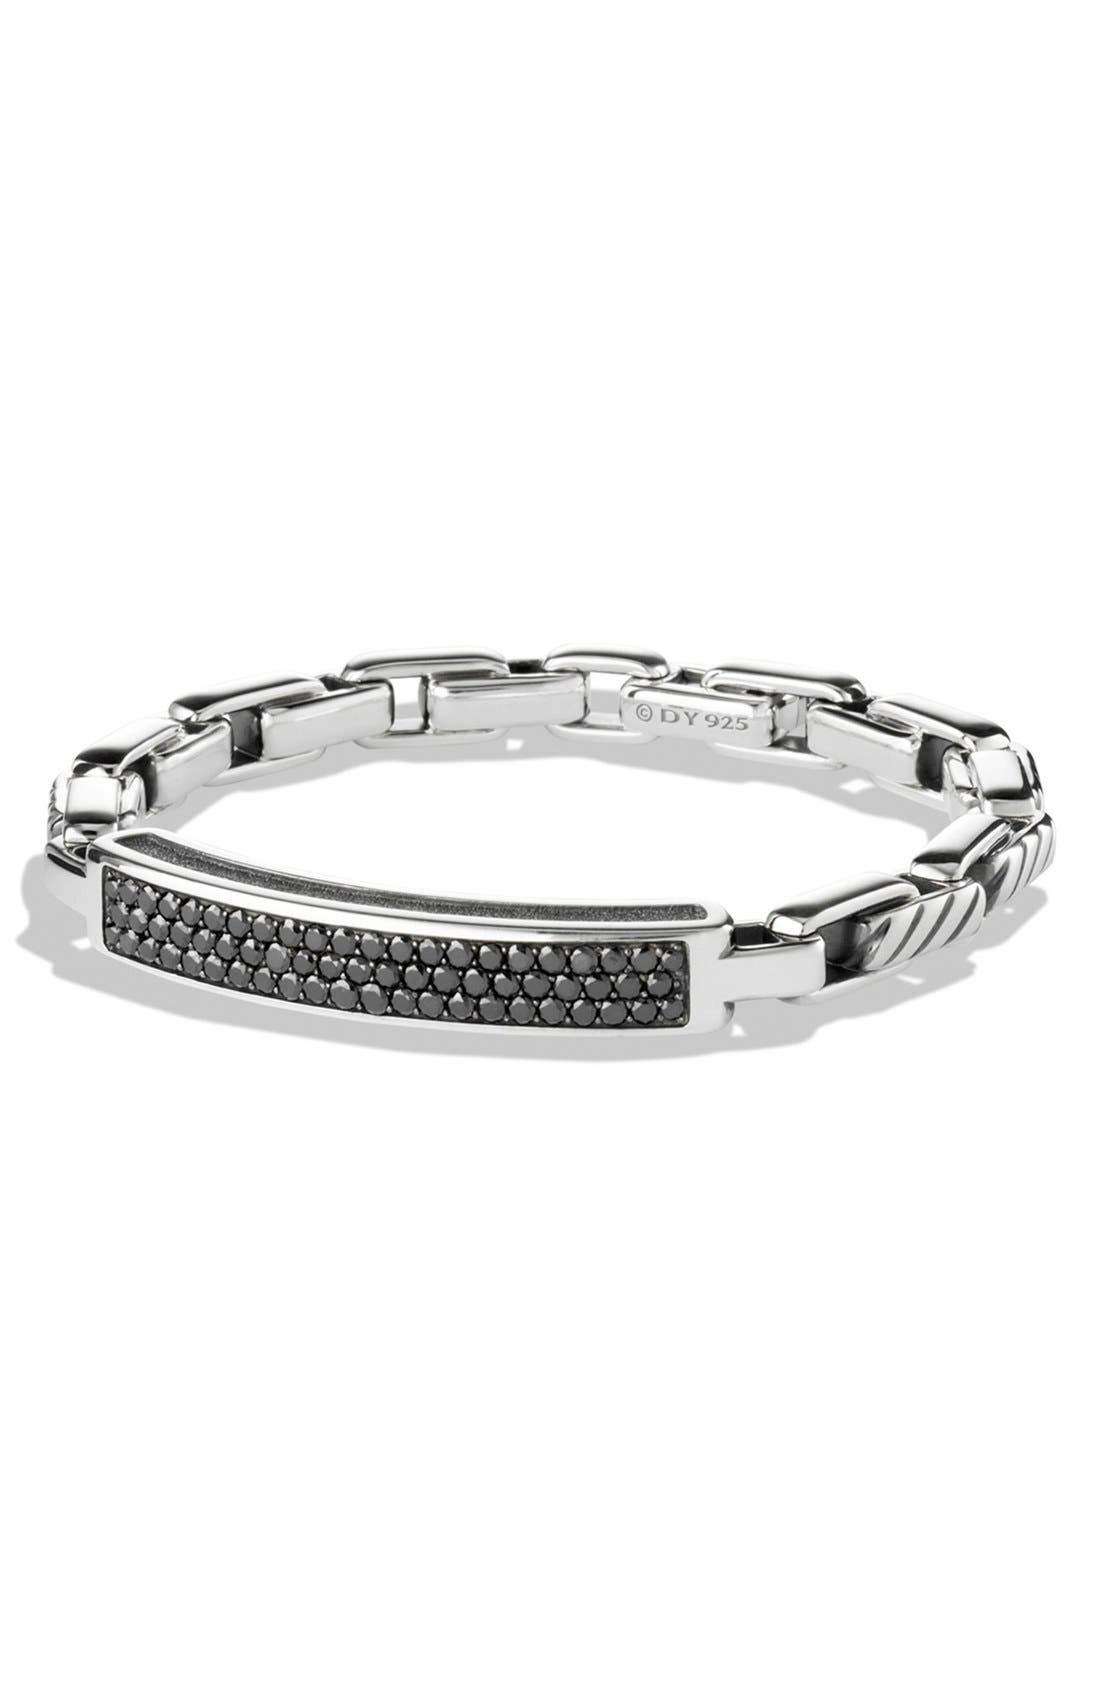 Main Image - David Yurman 'Modern Cable' ID Bracelet with Black Diamonds